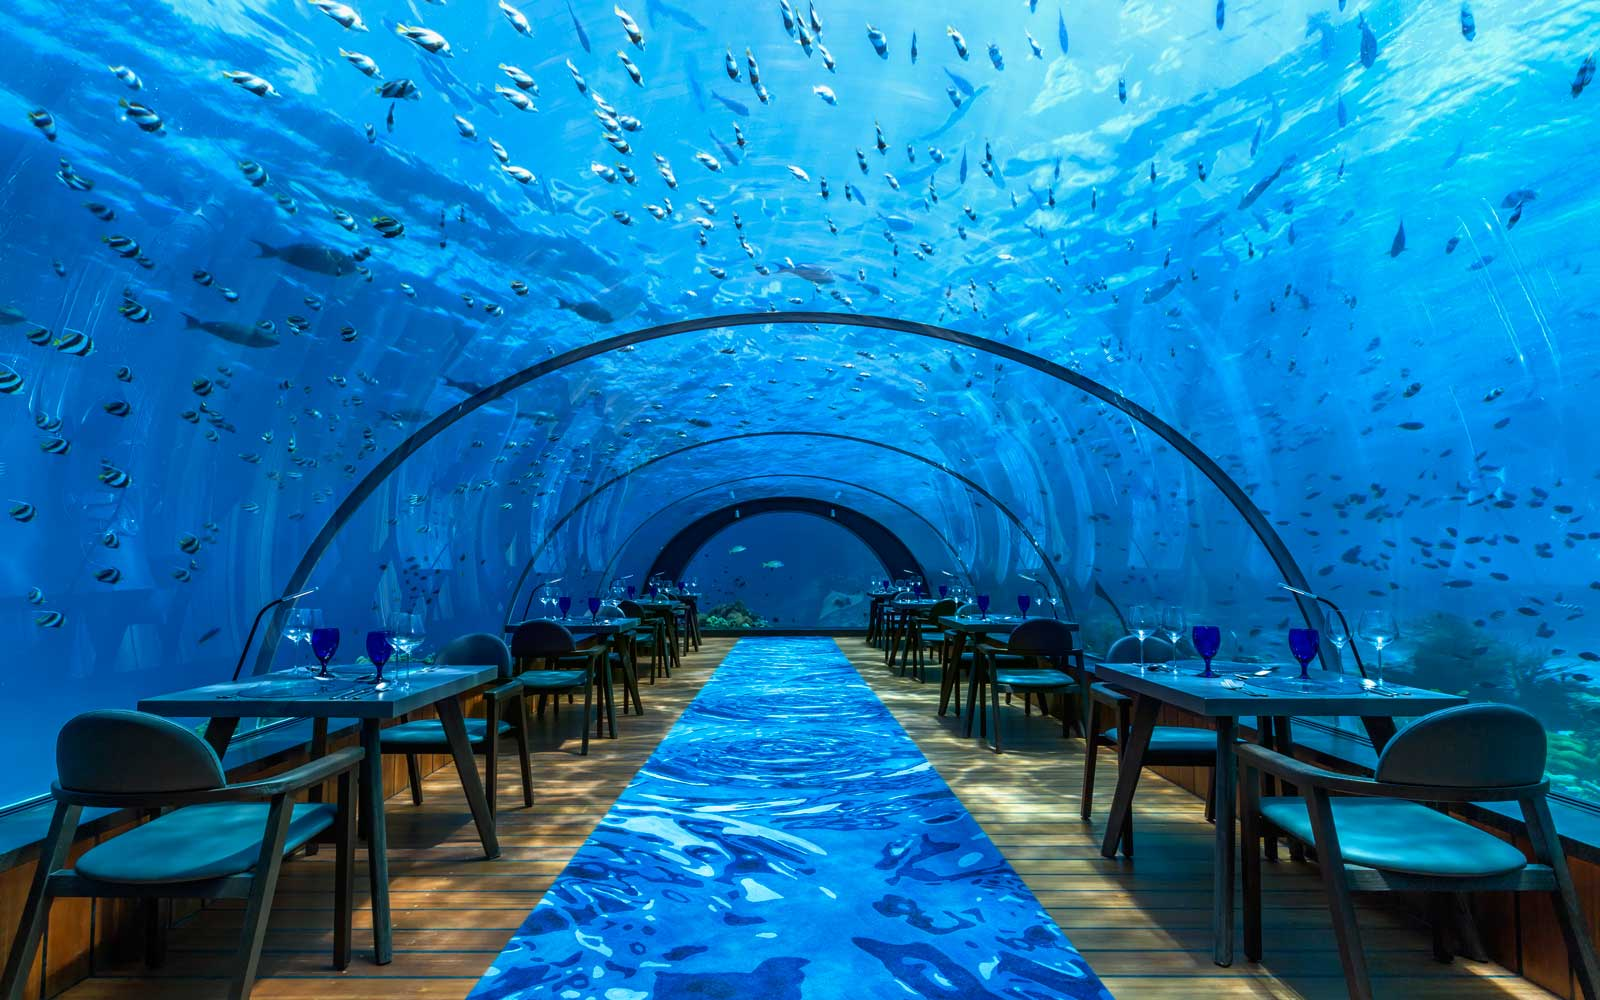 You Can Do Underwater Yoga Surrounded by Tropical Fish in the Maldives